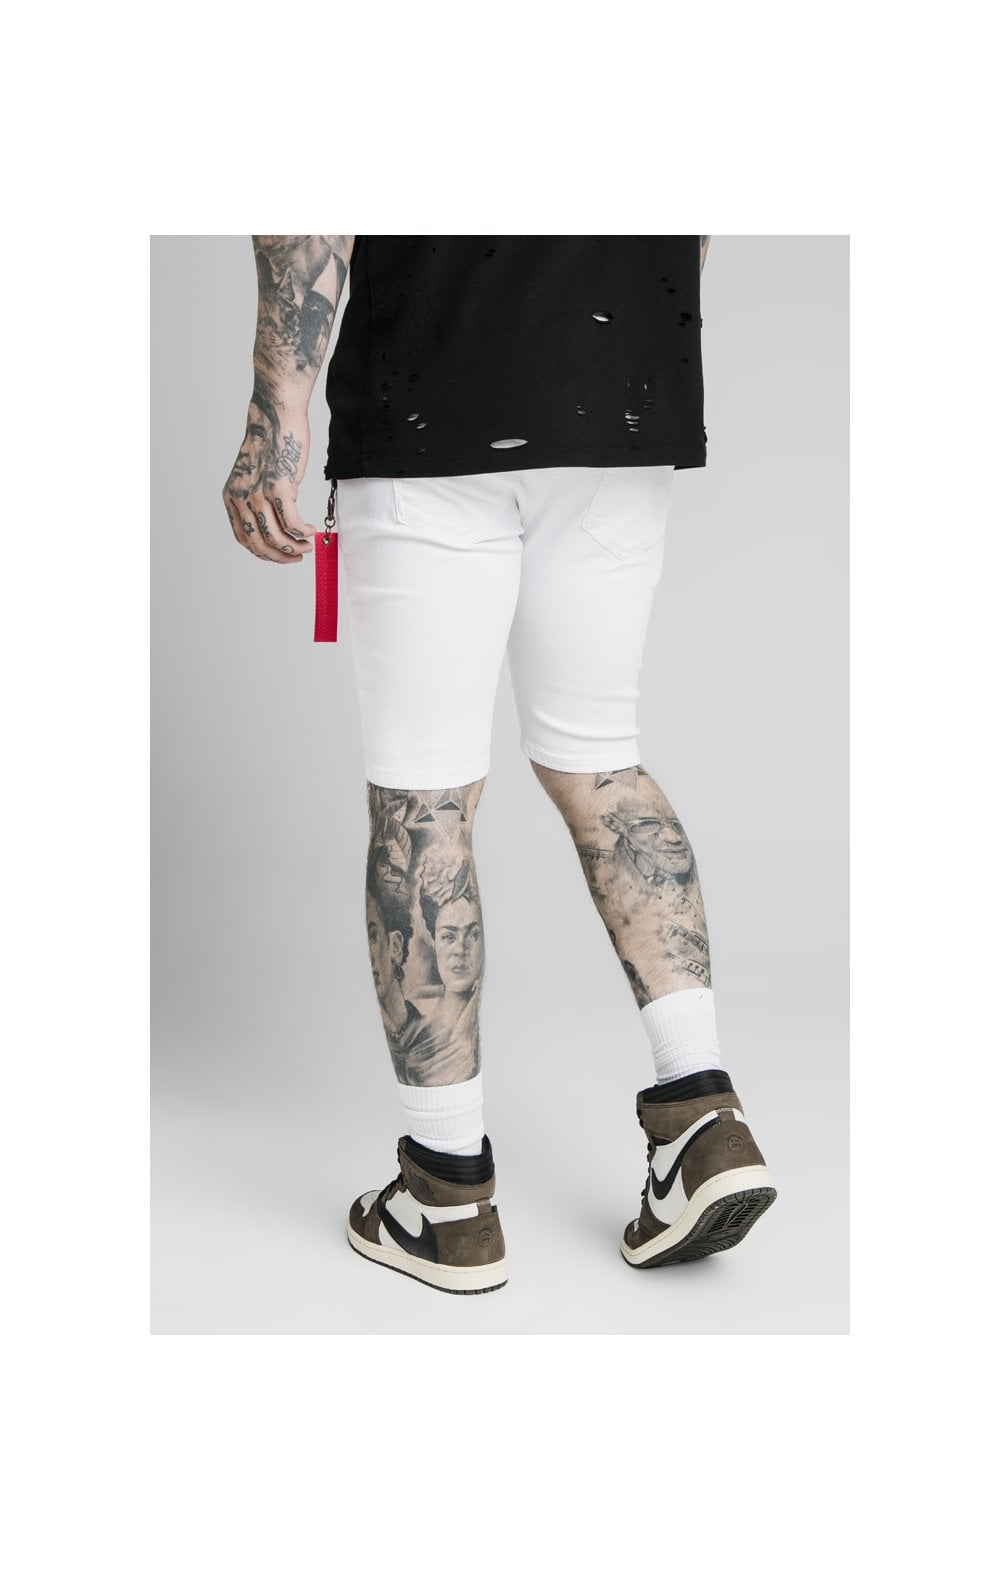 SikSilk Distressed Denim Flight Shorts - White (1)